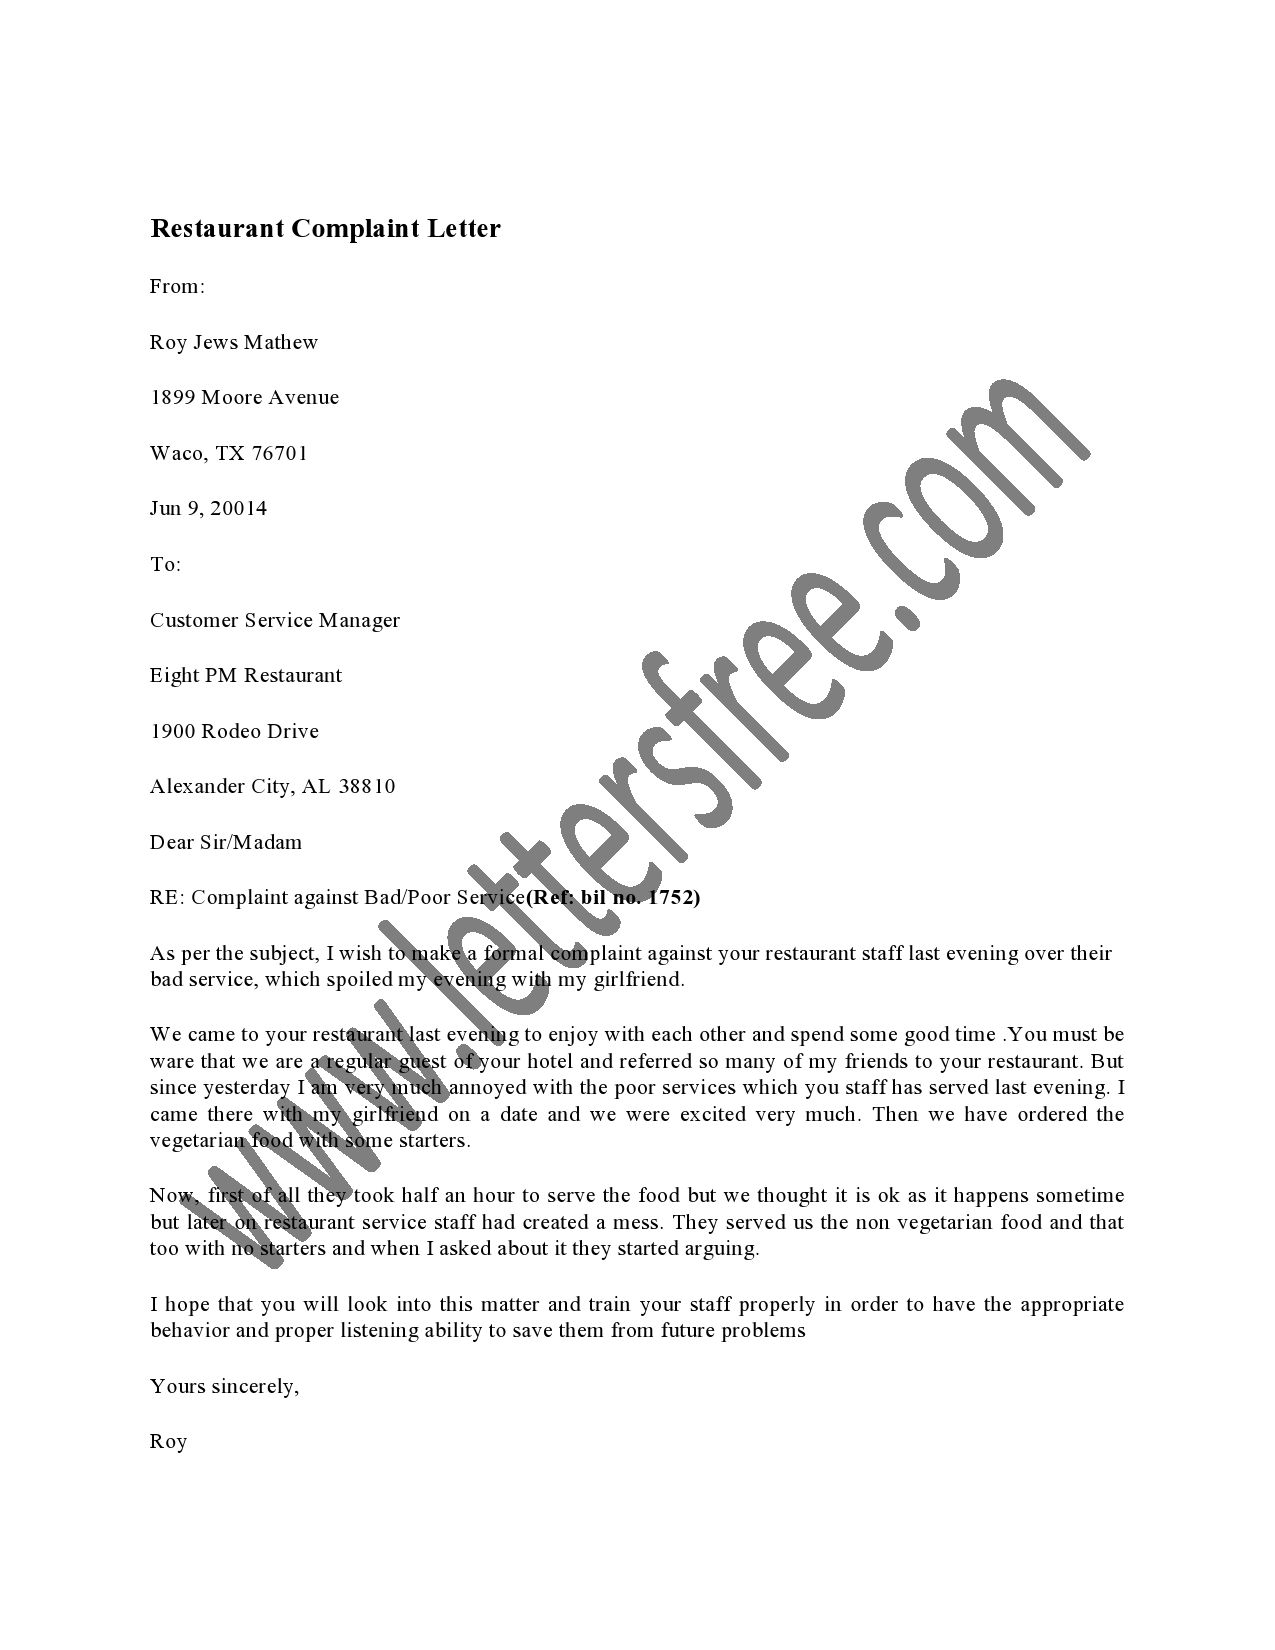 A Restaurant Complaint Letter Is Usually Sent By Frustrated Customer Of The Who Could